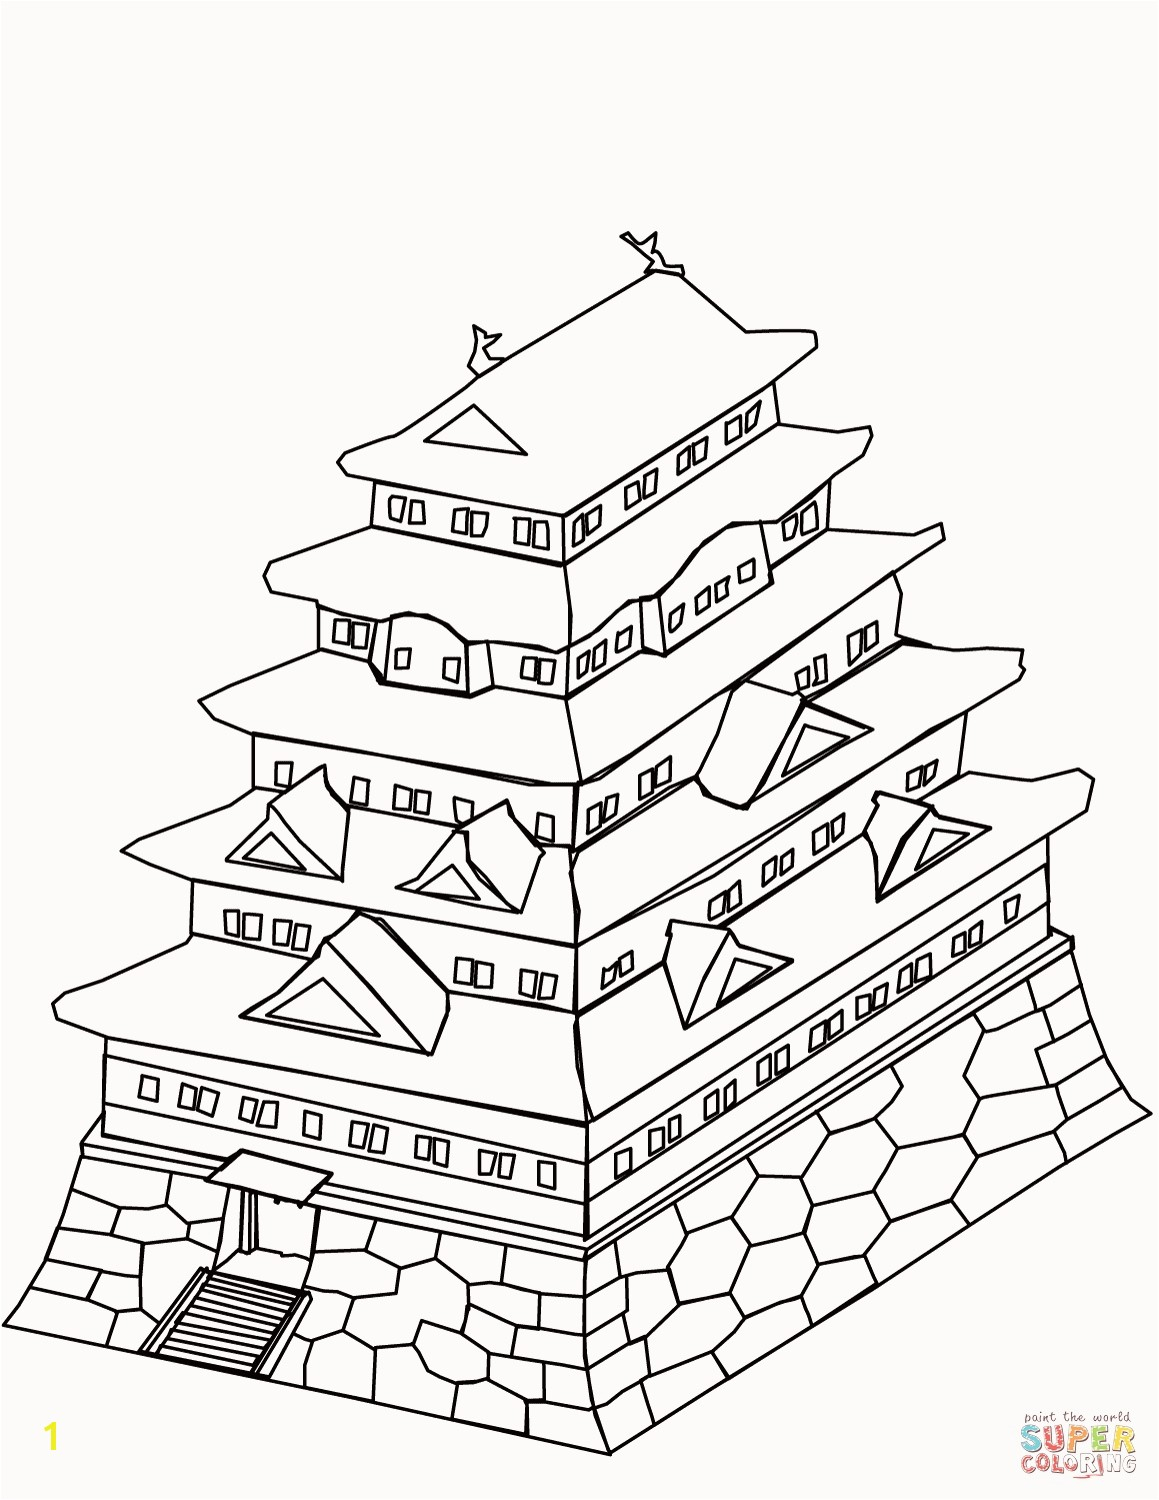 28 State Flags Coloring Pages Download - Coloring Sheets